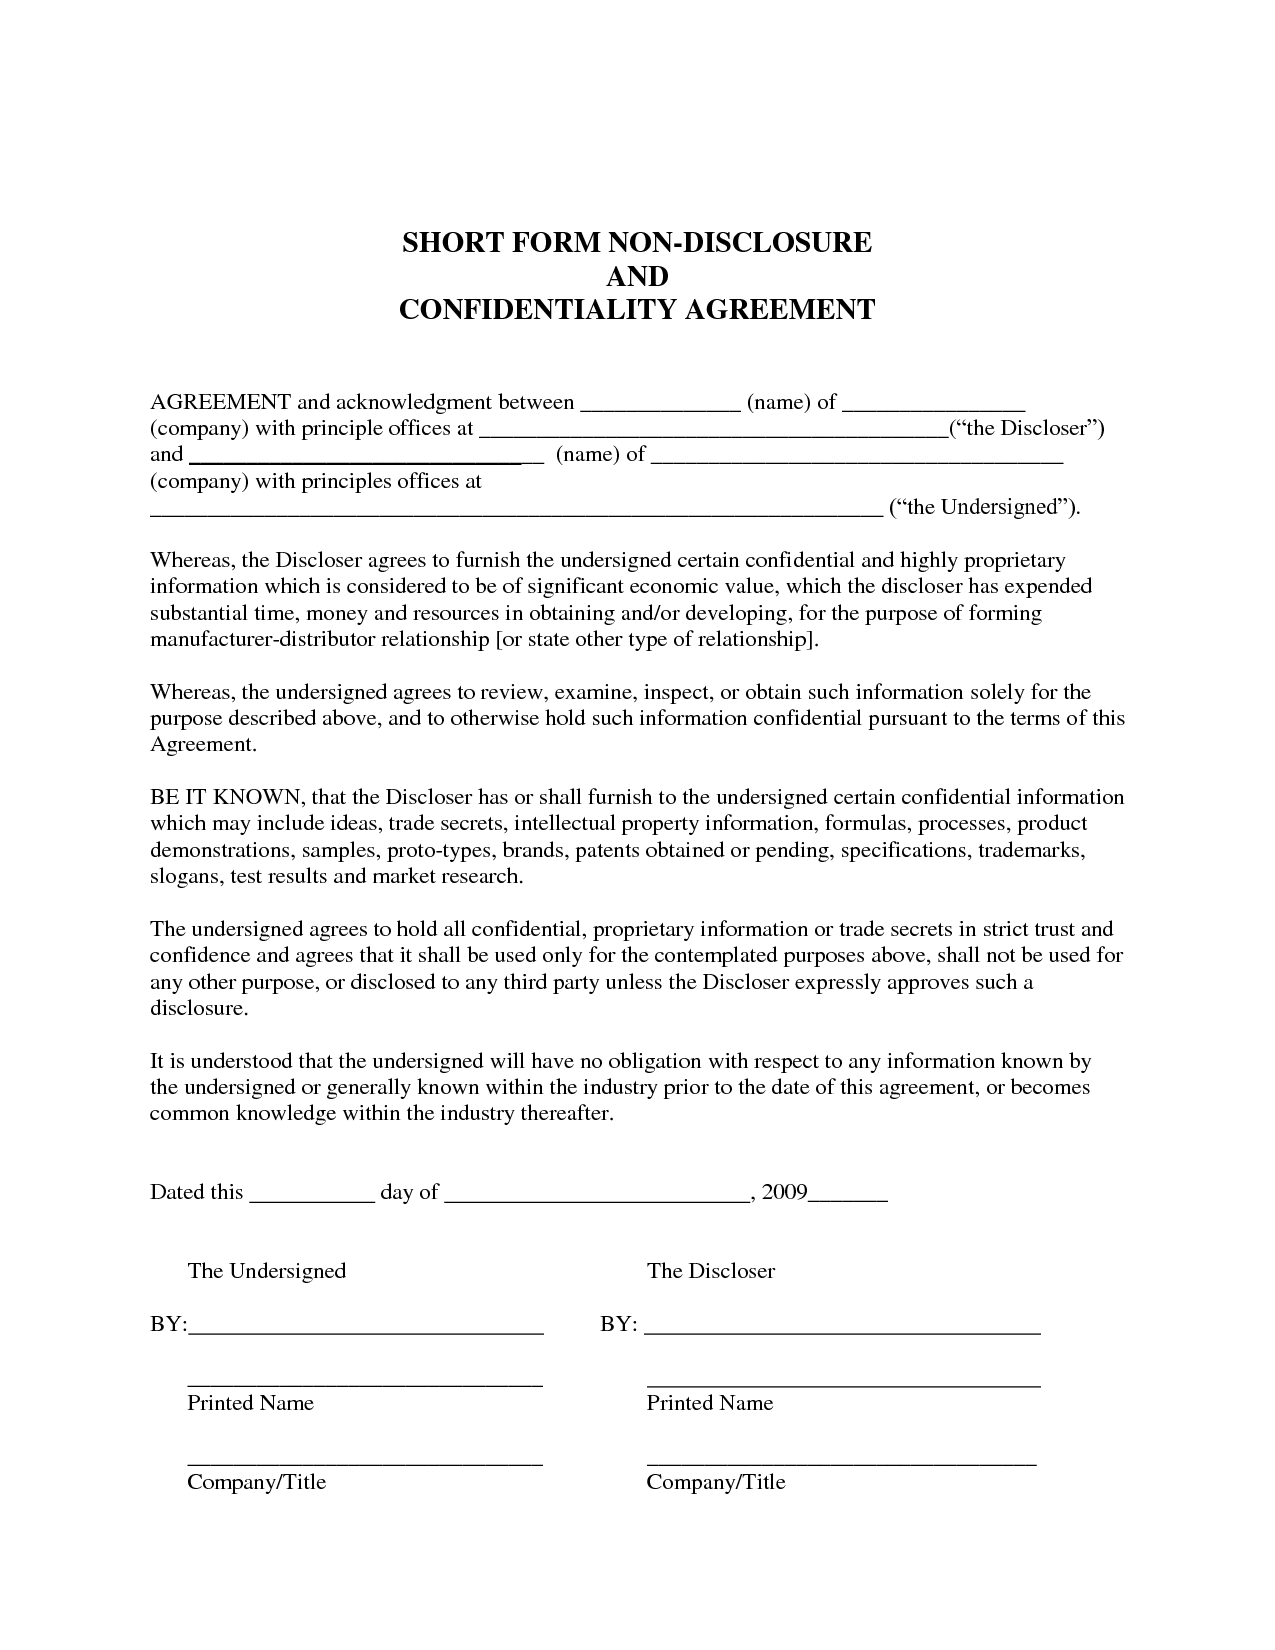 NonDisclosure Agreement Confidentiality Agreement Sample For – Confidentiality Statement